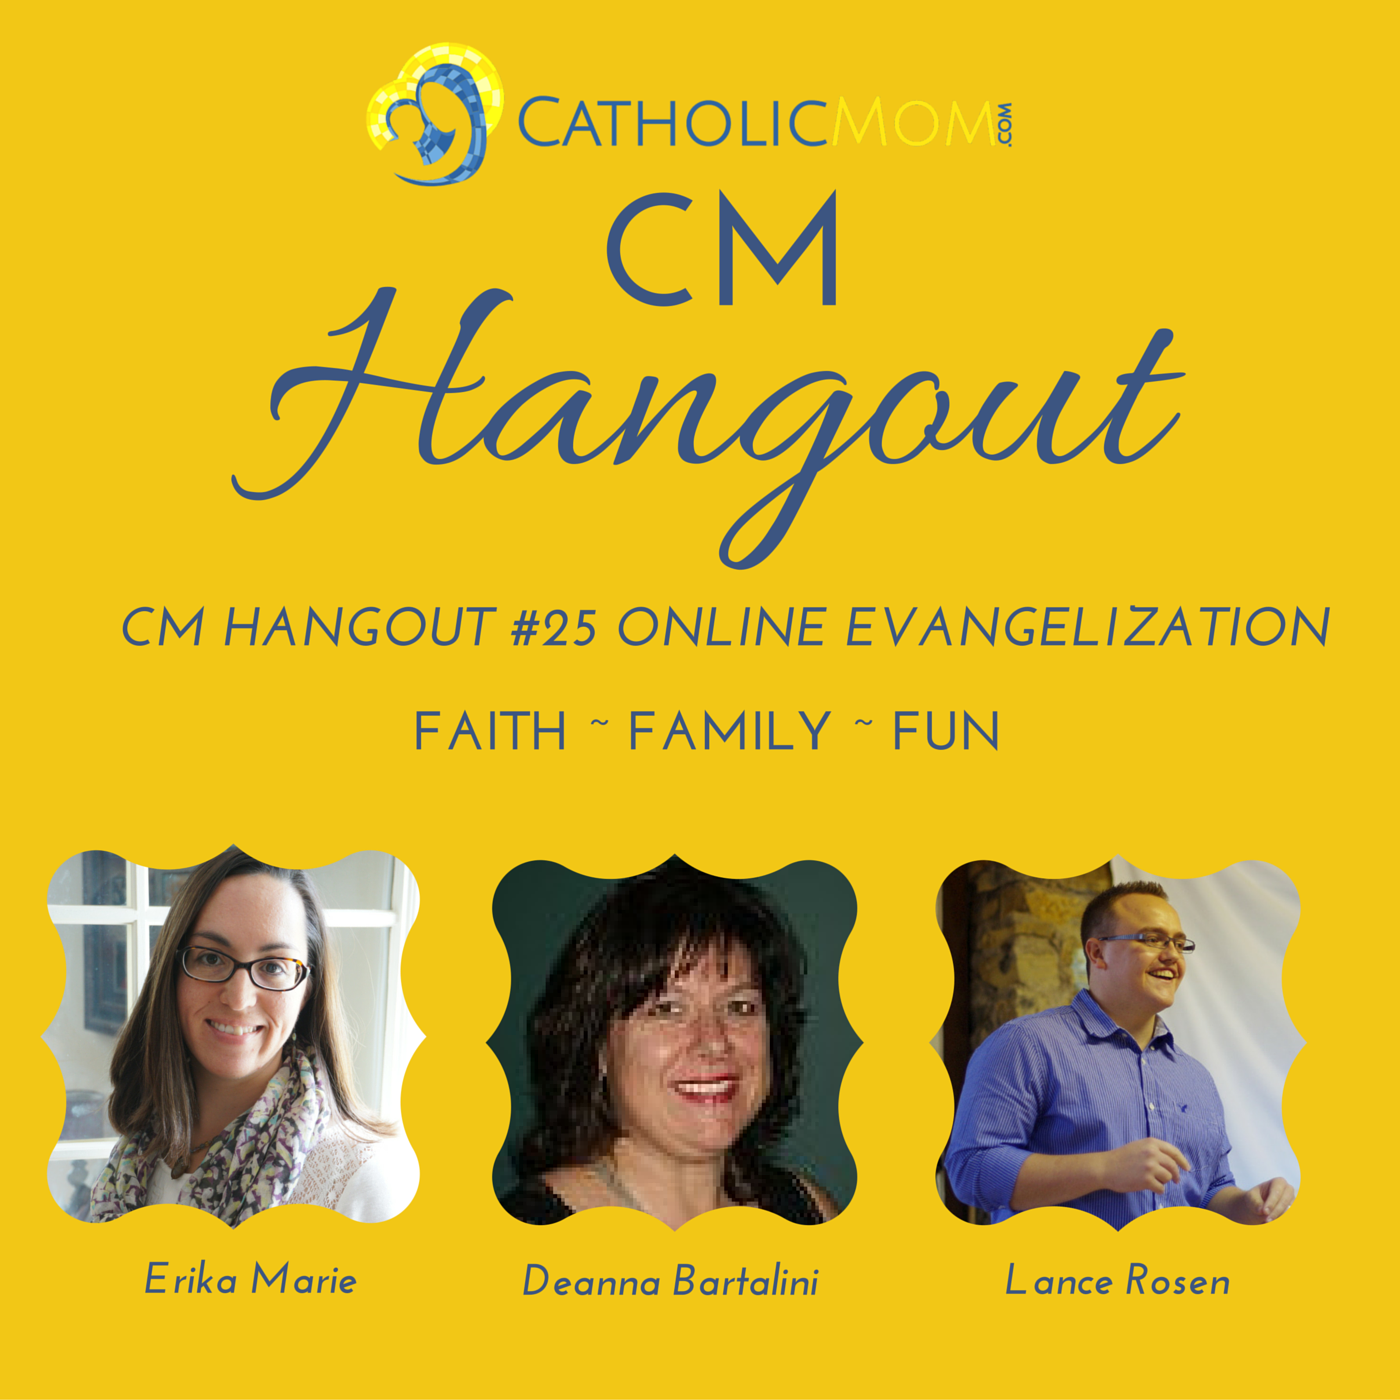 CM Hangout #25: Online Evangelization Tips, Strategies and Authenticity